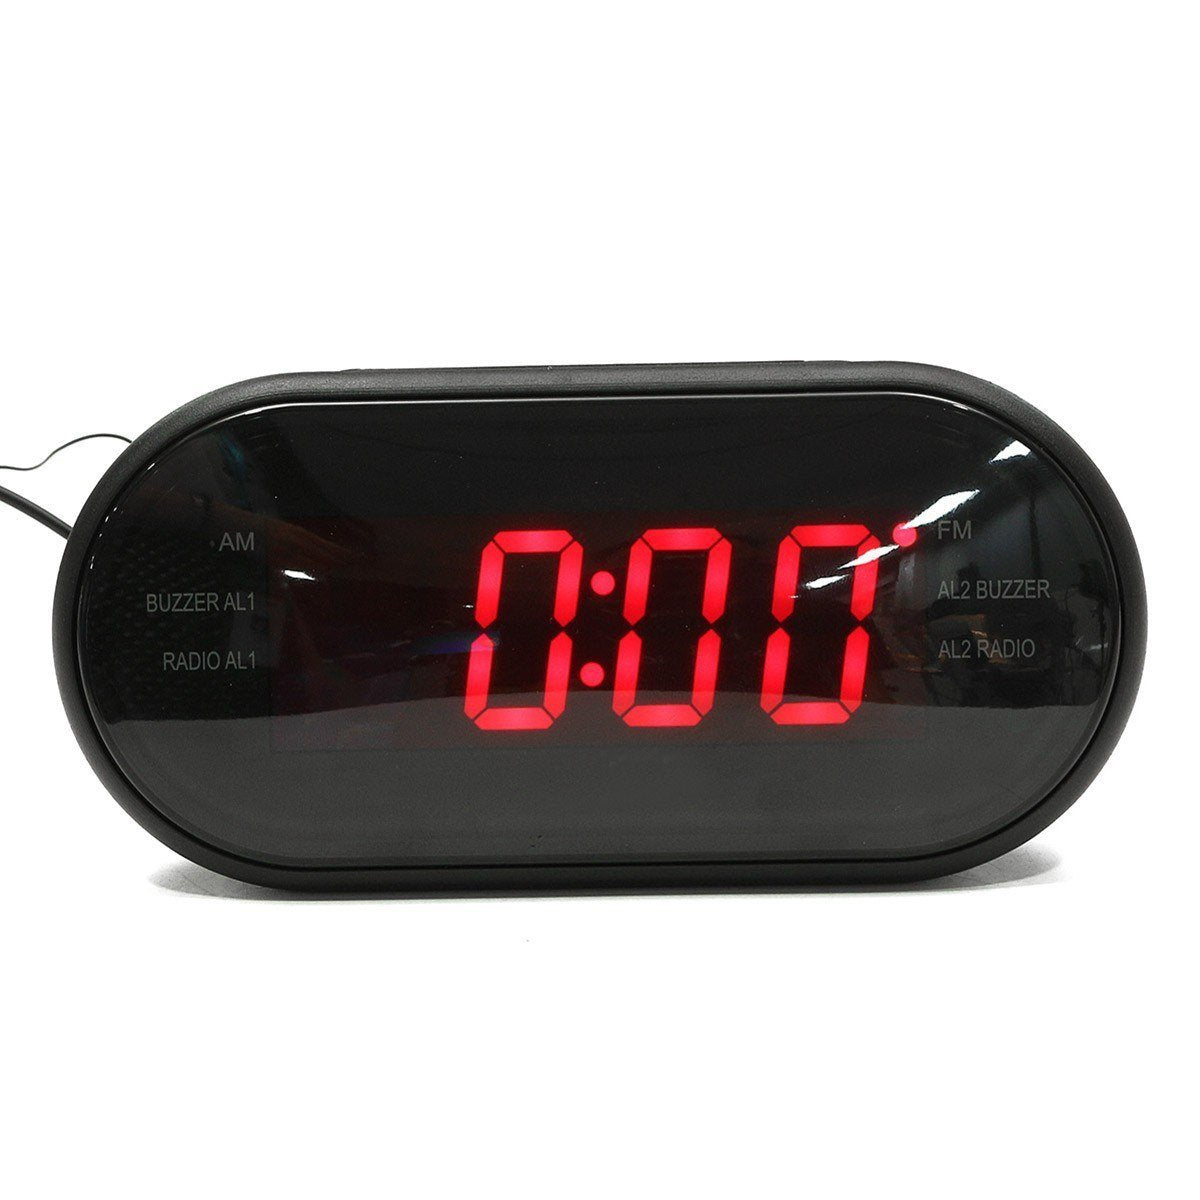 LED Display Digital AM/FM Radio